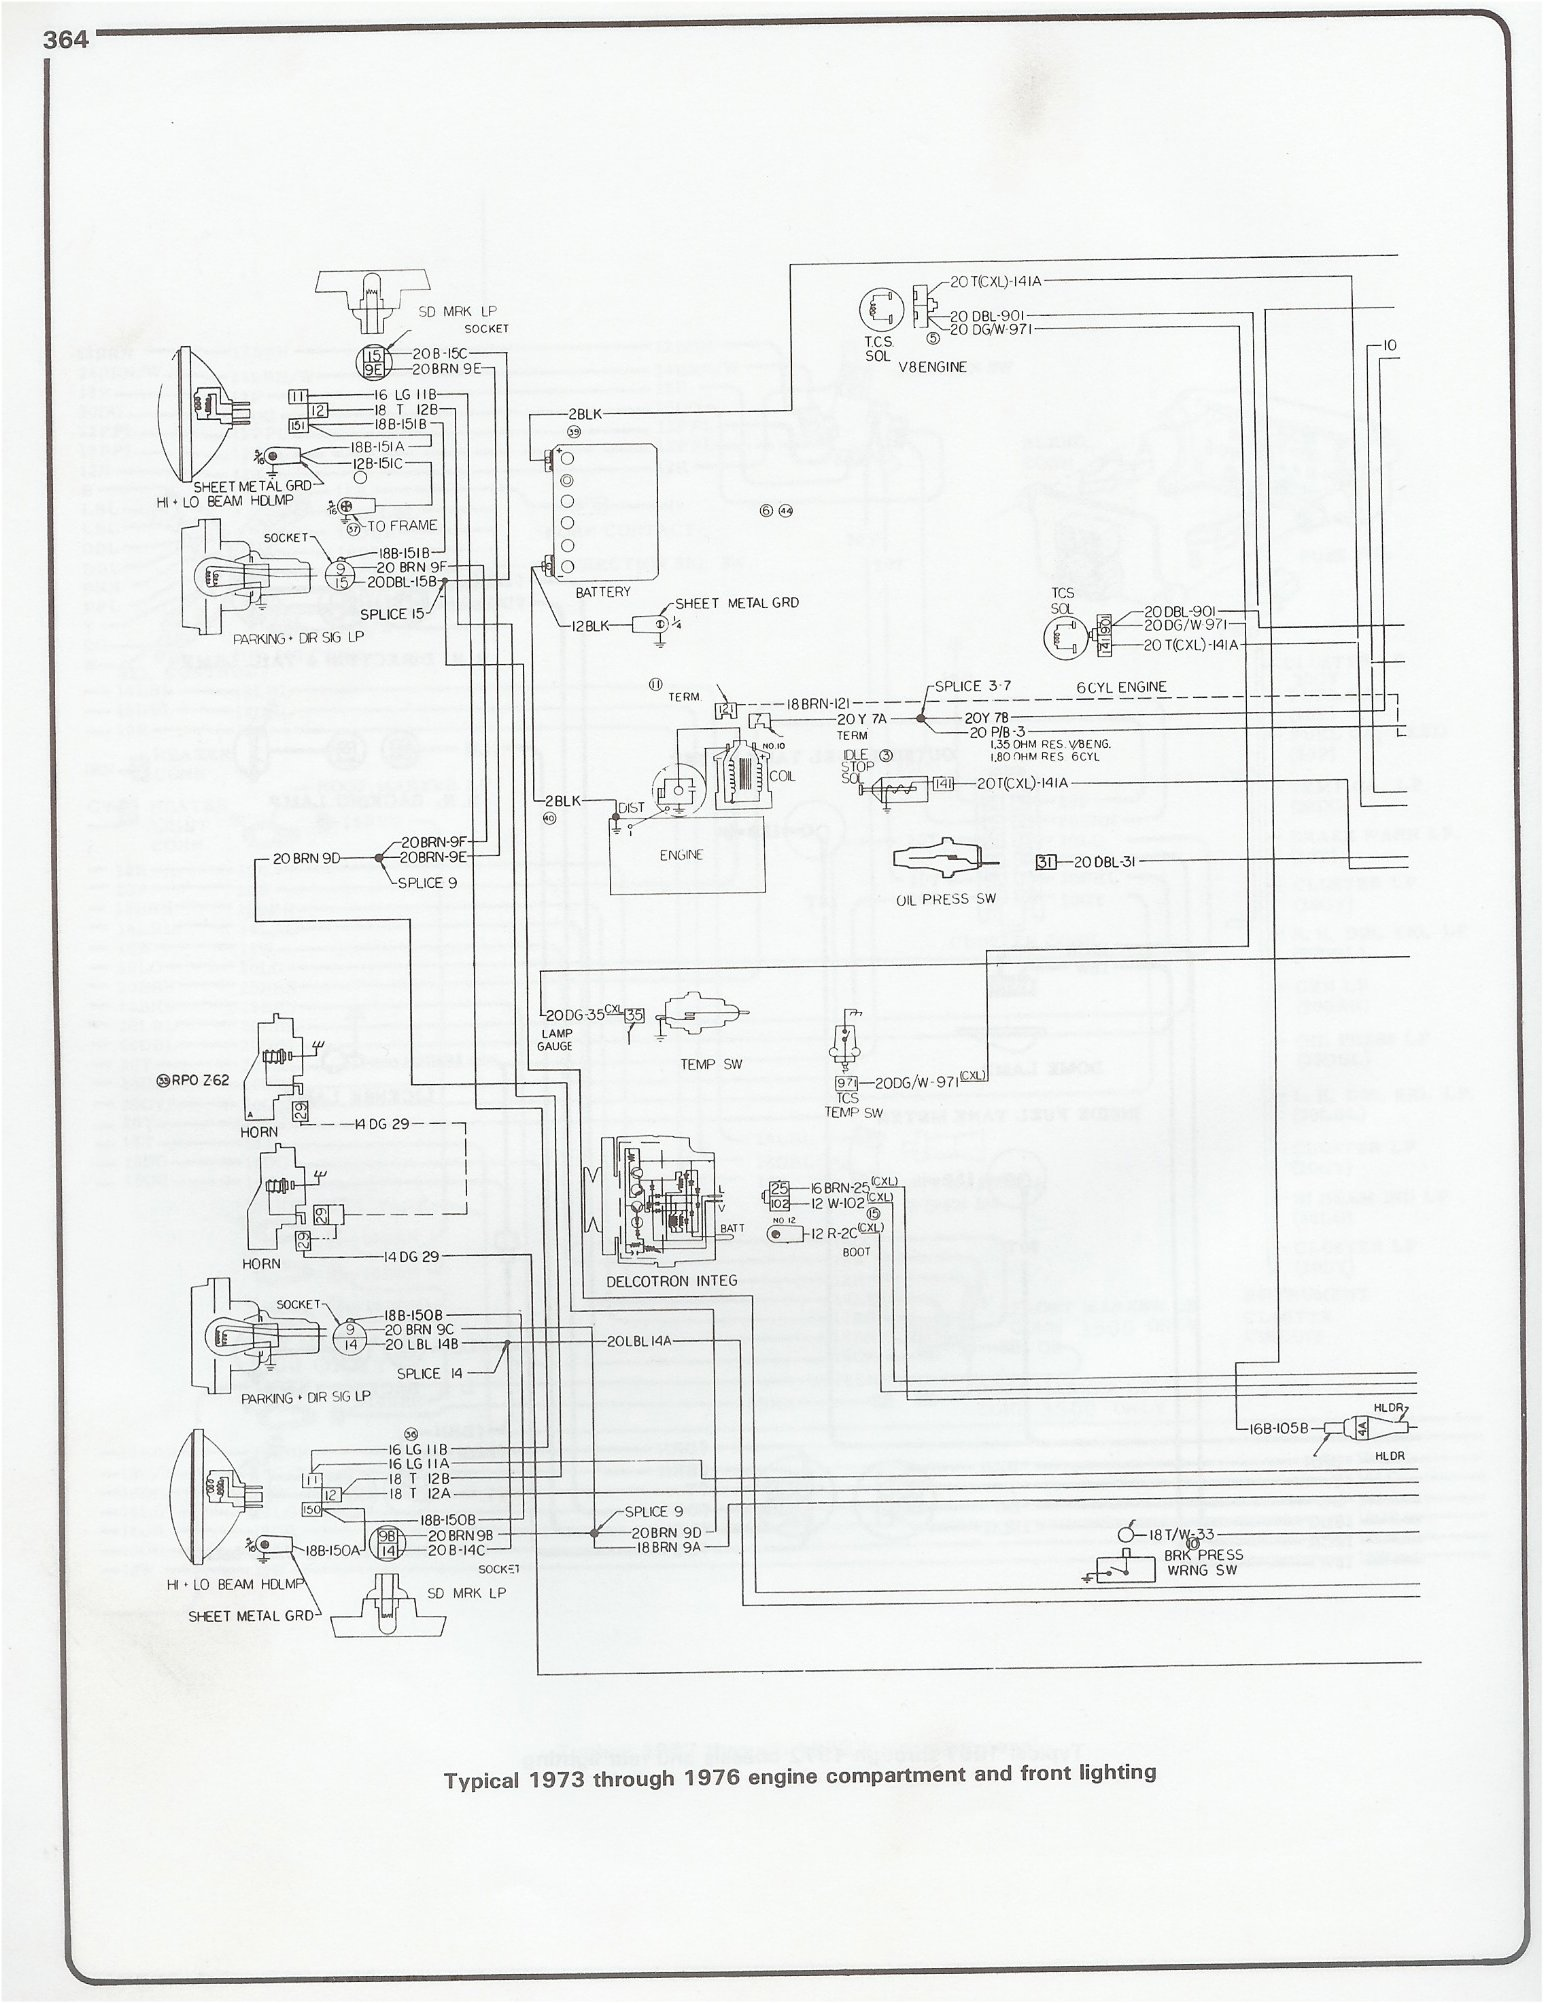 Fuse Box Wiring Diagram 76 Corvette Just Data 1976 Harness C10 Schema 1977 Complete 73 87